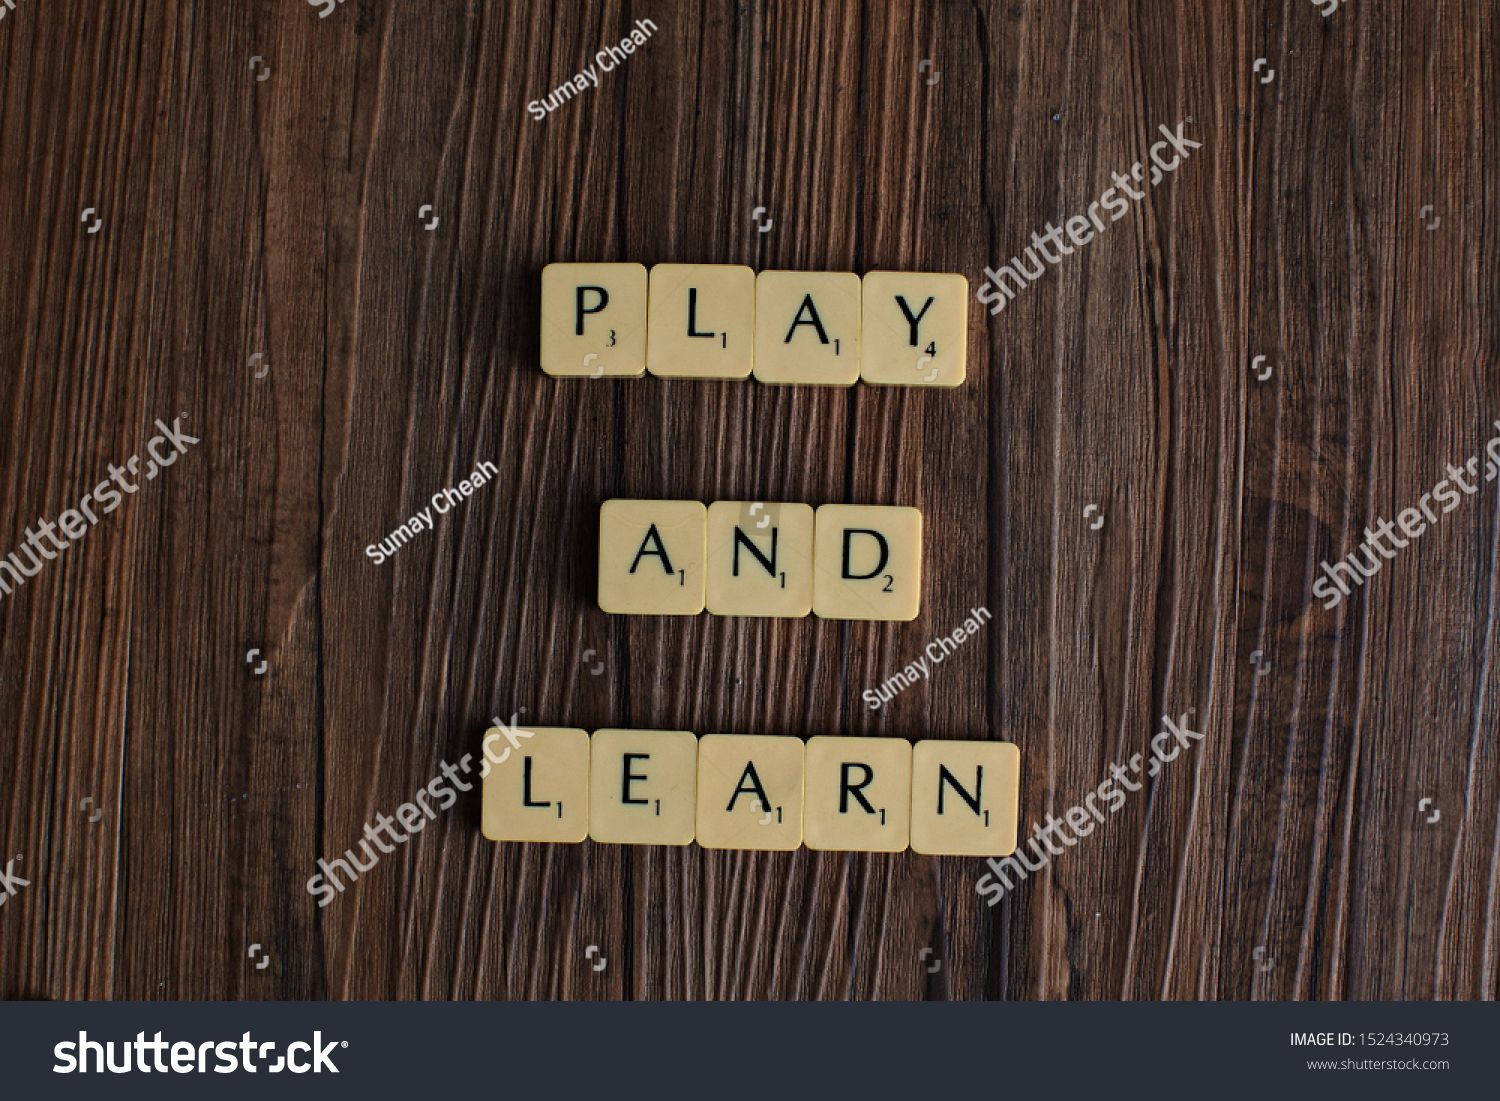 Penang, MalaysiaAug 12 2019.'Play and Learn' spelled out